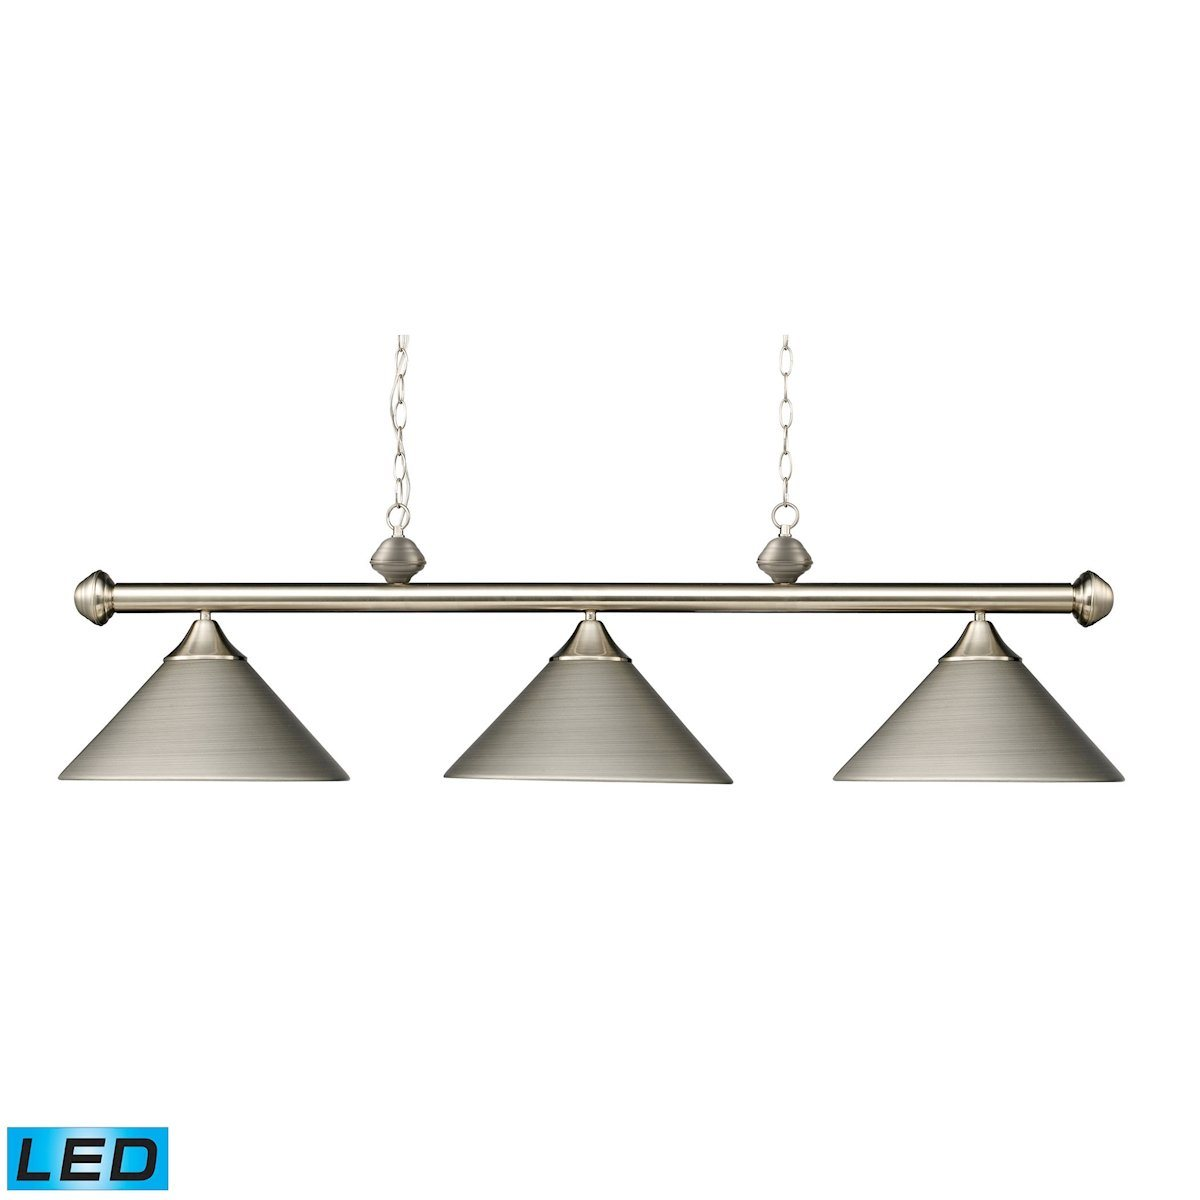 Casual Traditions 3 Light LED Billiard In Satin Nickel With Matching Metal Shades Ceiling Elk Lighting